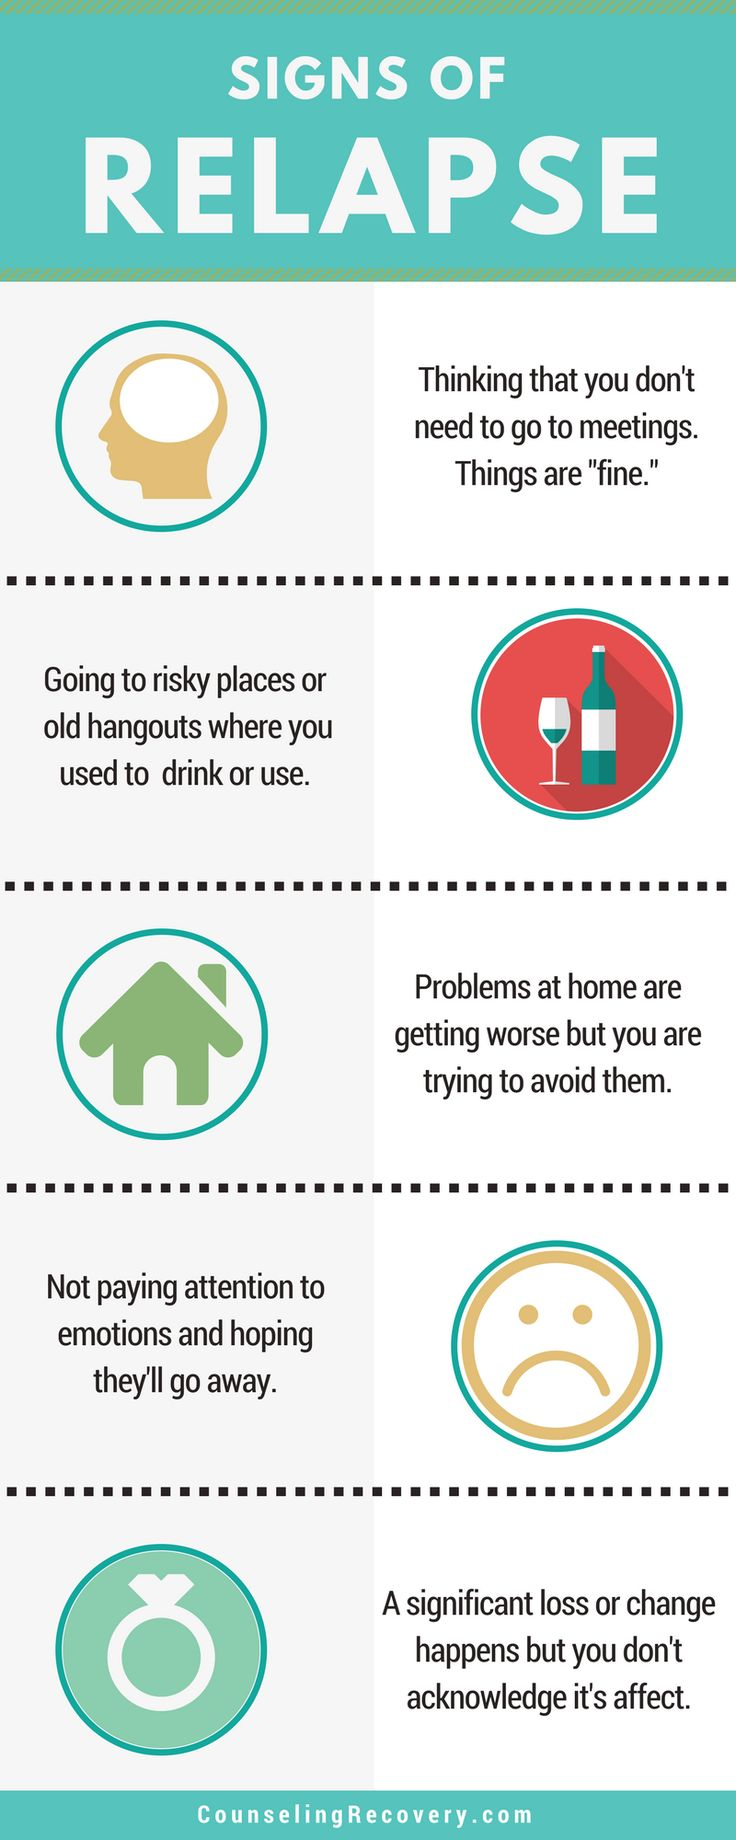 Knowing the early warning signs can prevent relapse in alcoholism or addiction. Click the image to read more how to recognize the signs.